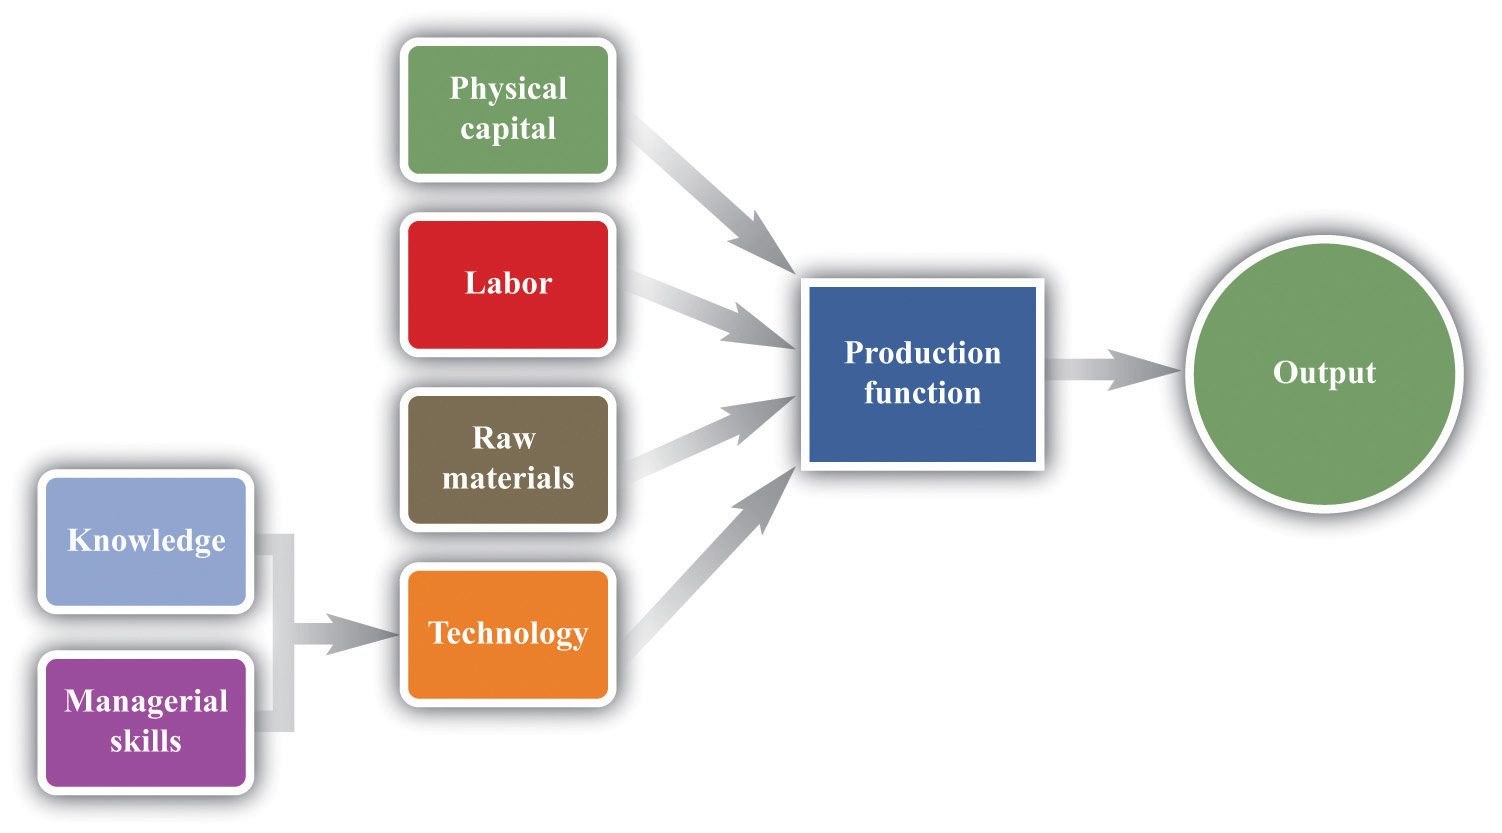 growing jobs technology is the knowledge the blueprints that a firm possesses together managerial skills